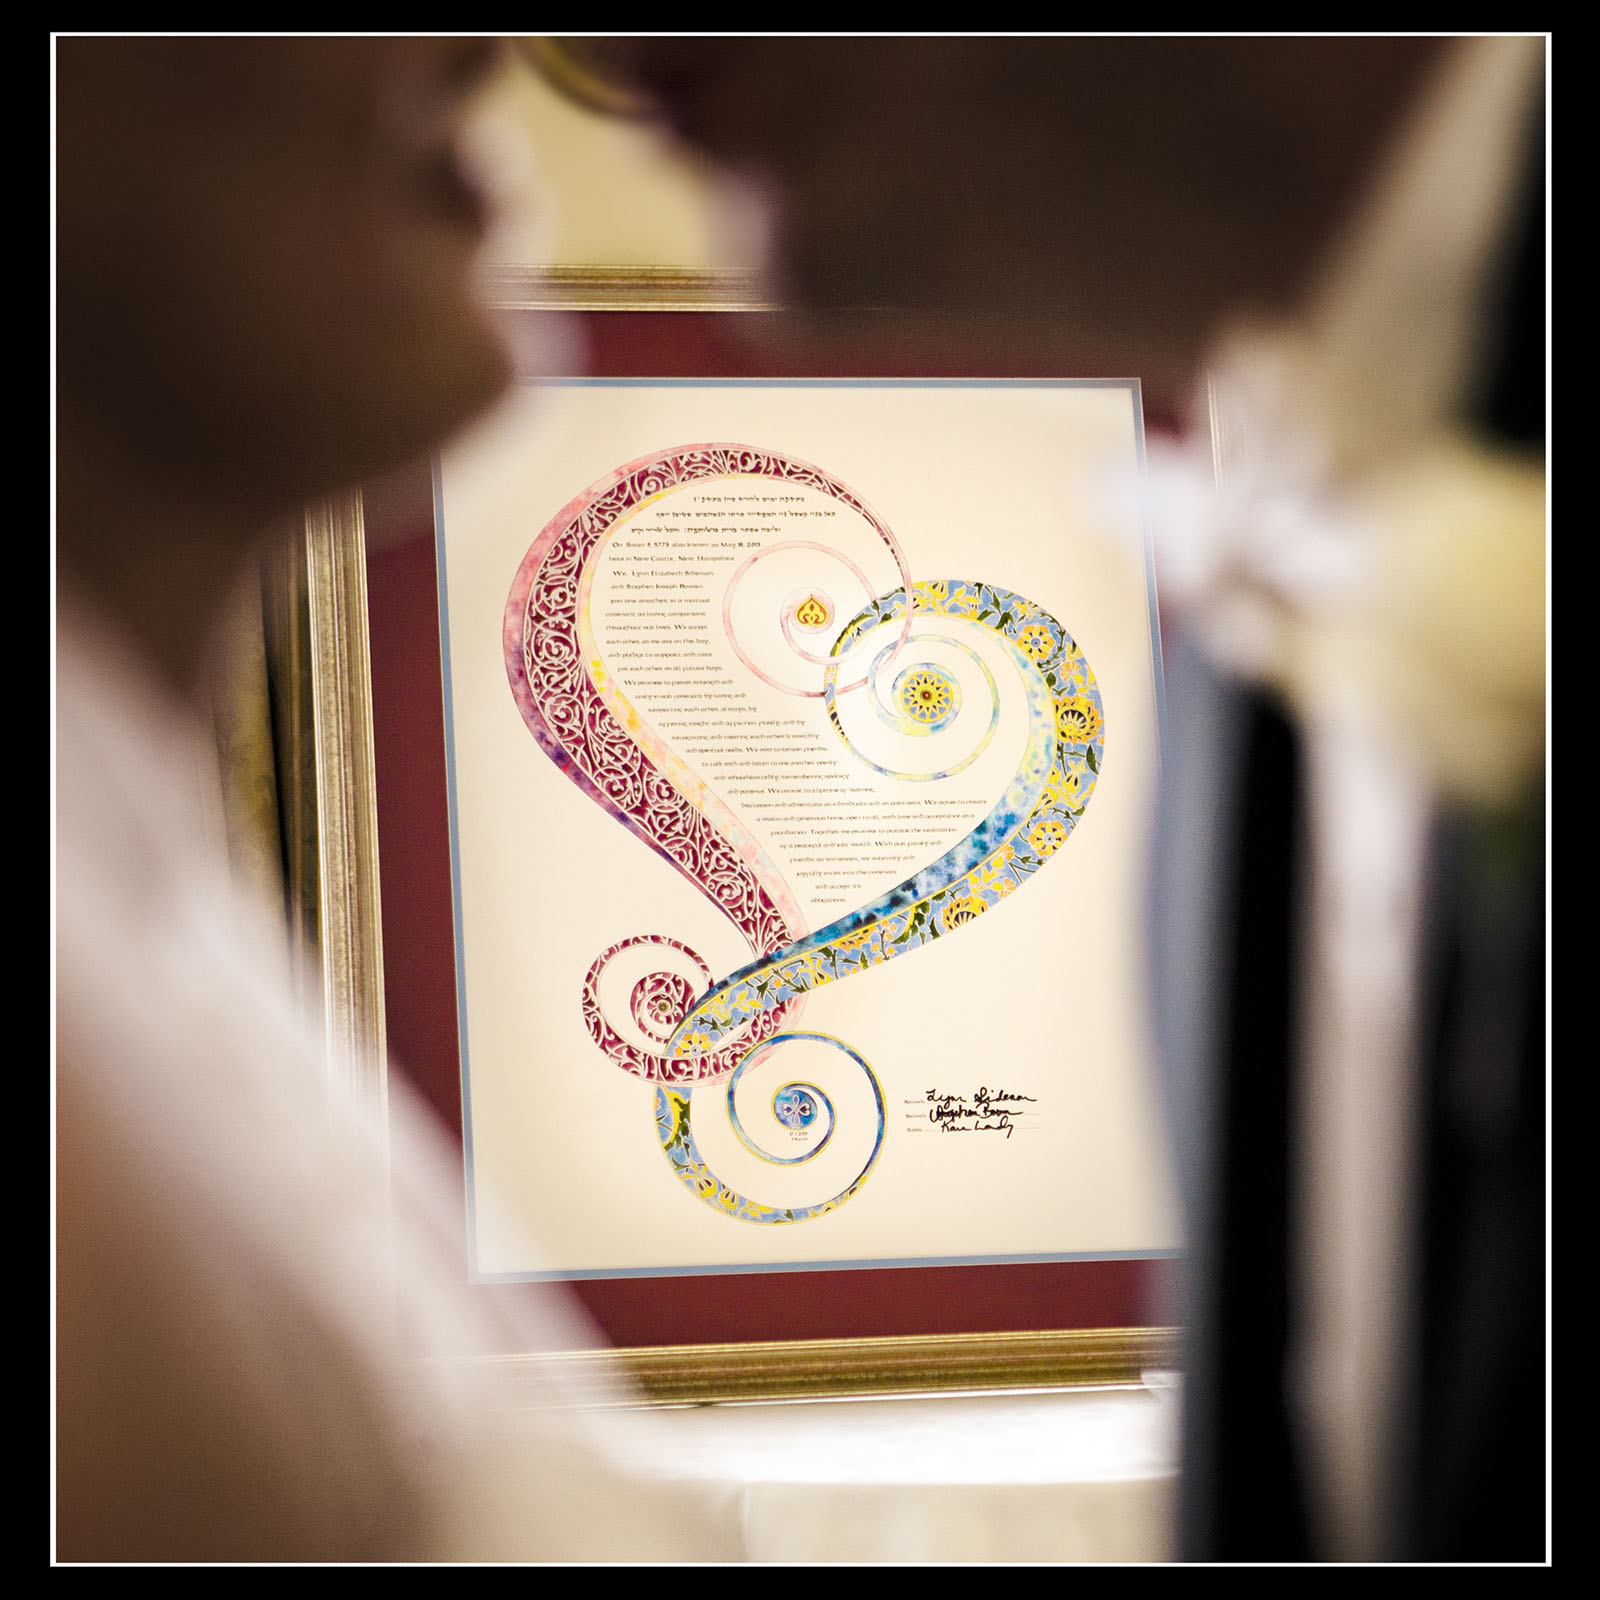 Favorite Wedding Pictures from Wentworth - great ketubah